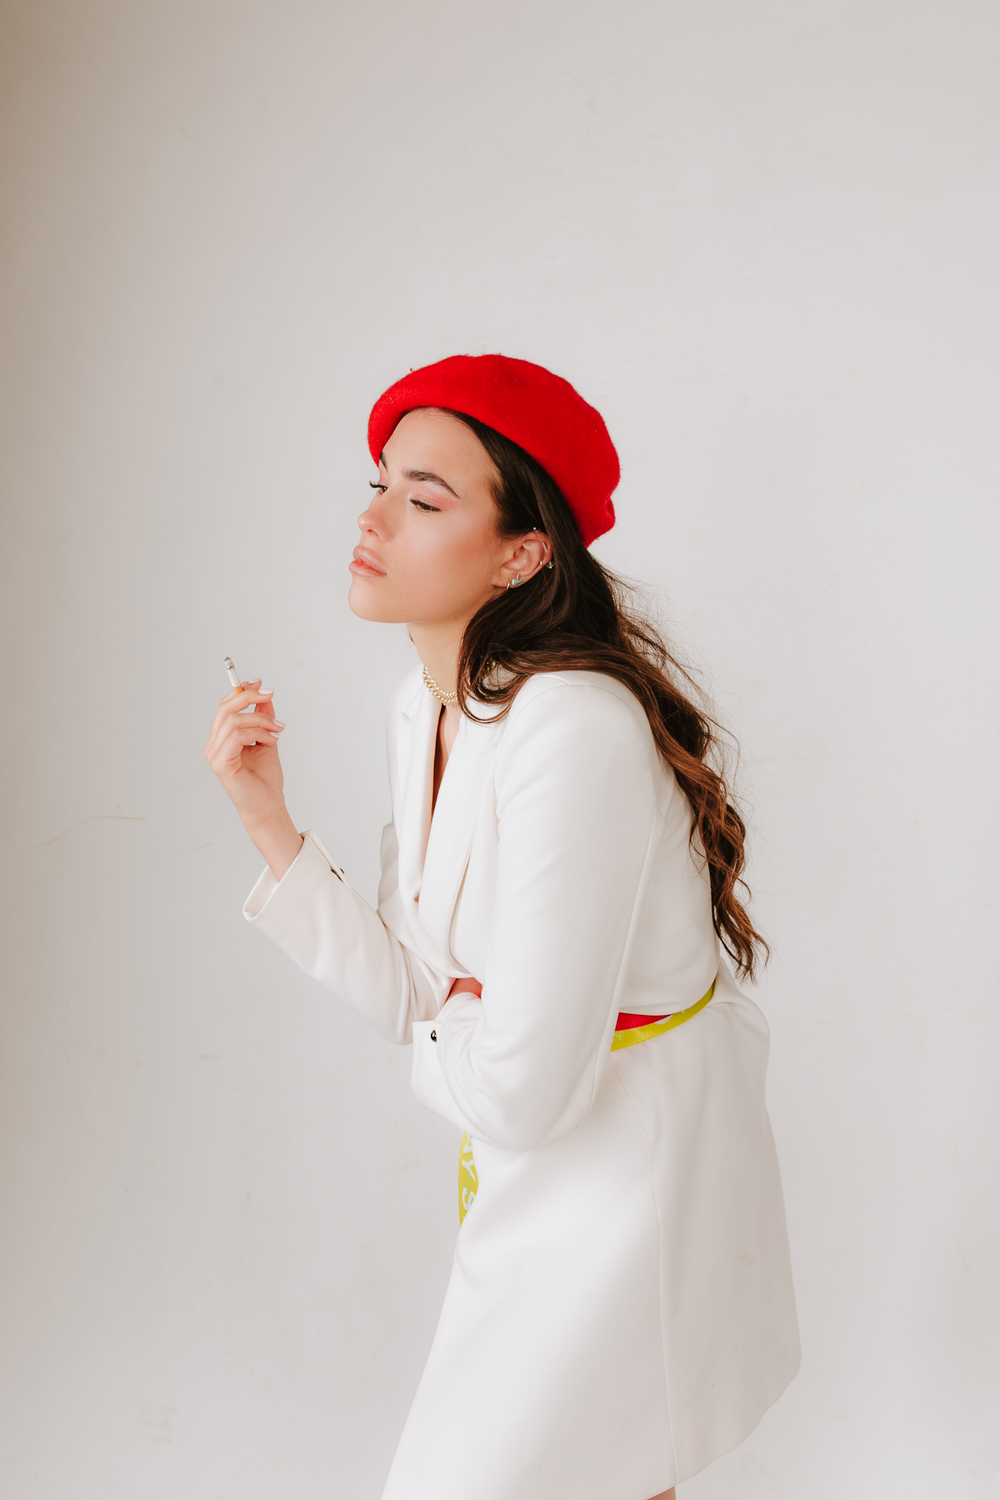 woman in white long sleeve shirt wearing red hat